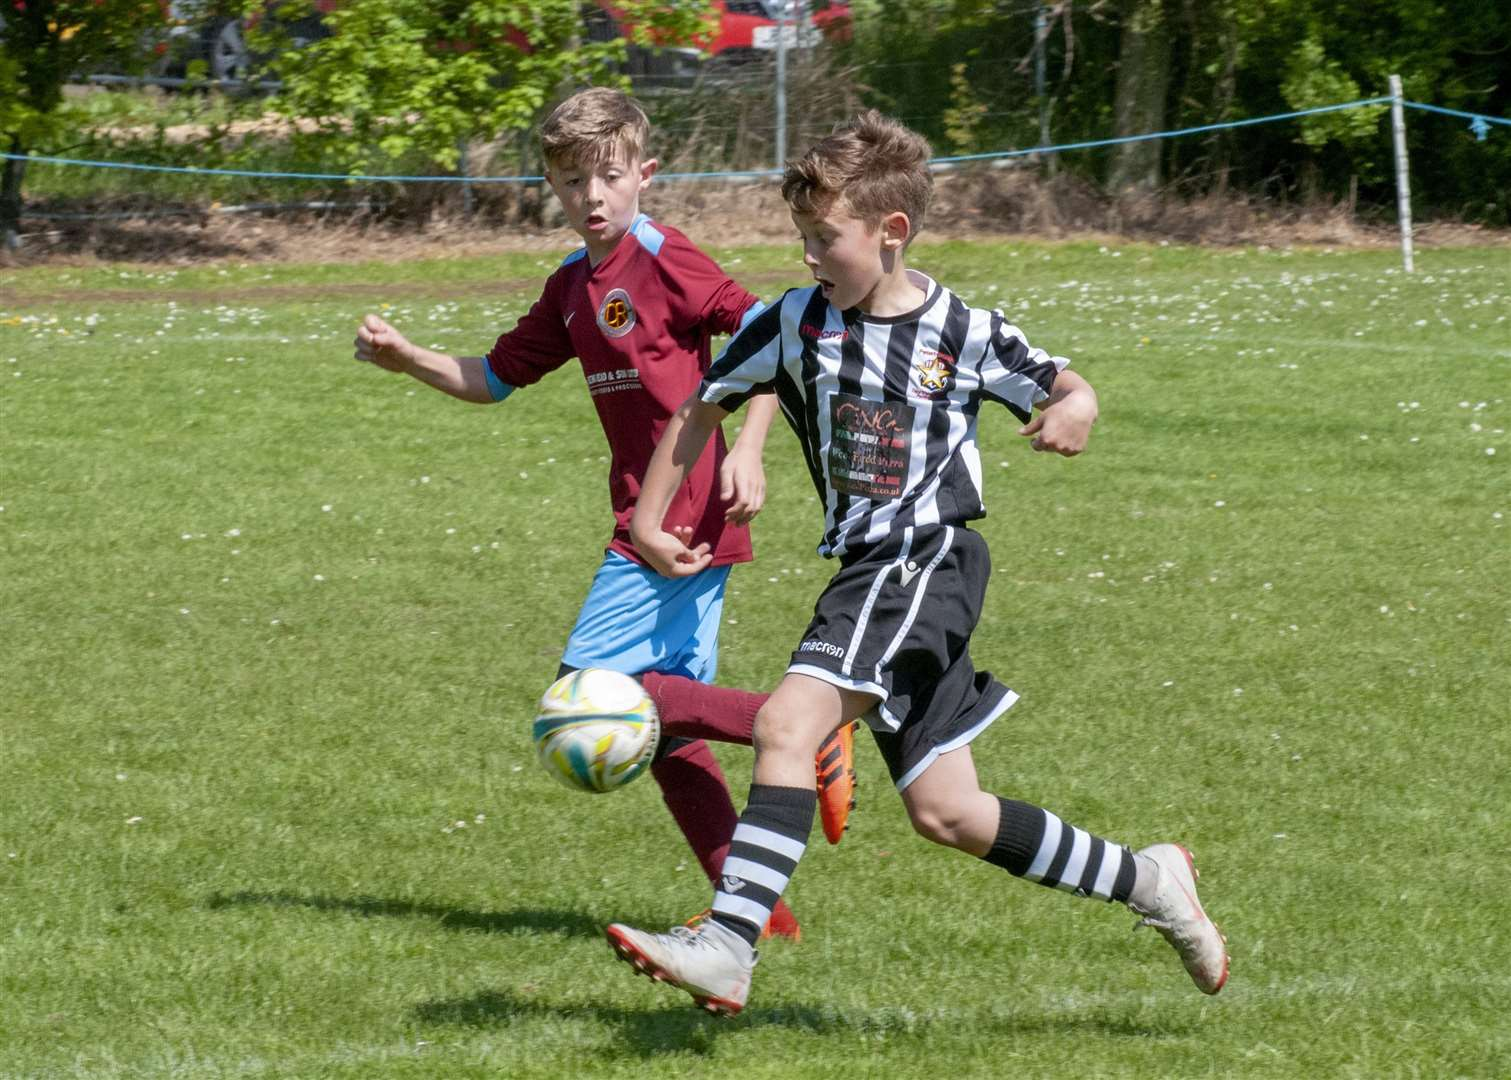 Action from the Neil Olsen Memorial Tournament at Deeping Rangers. Photo: Lee Hellwing (10268248)